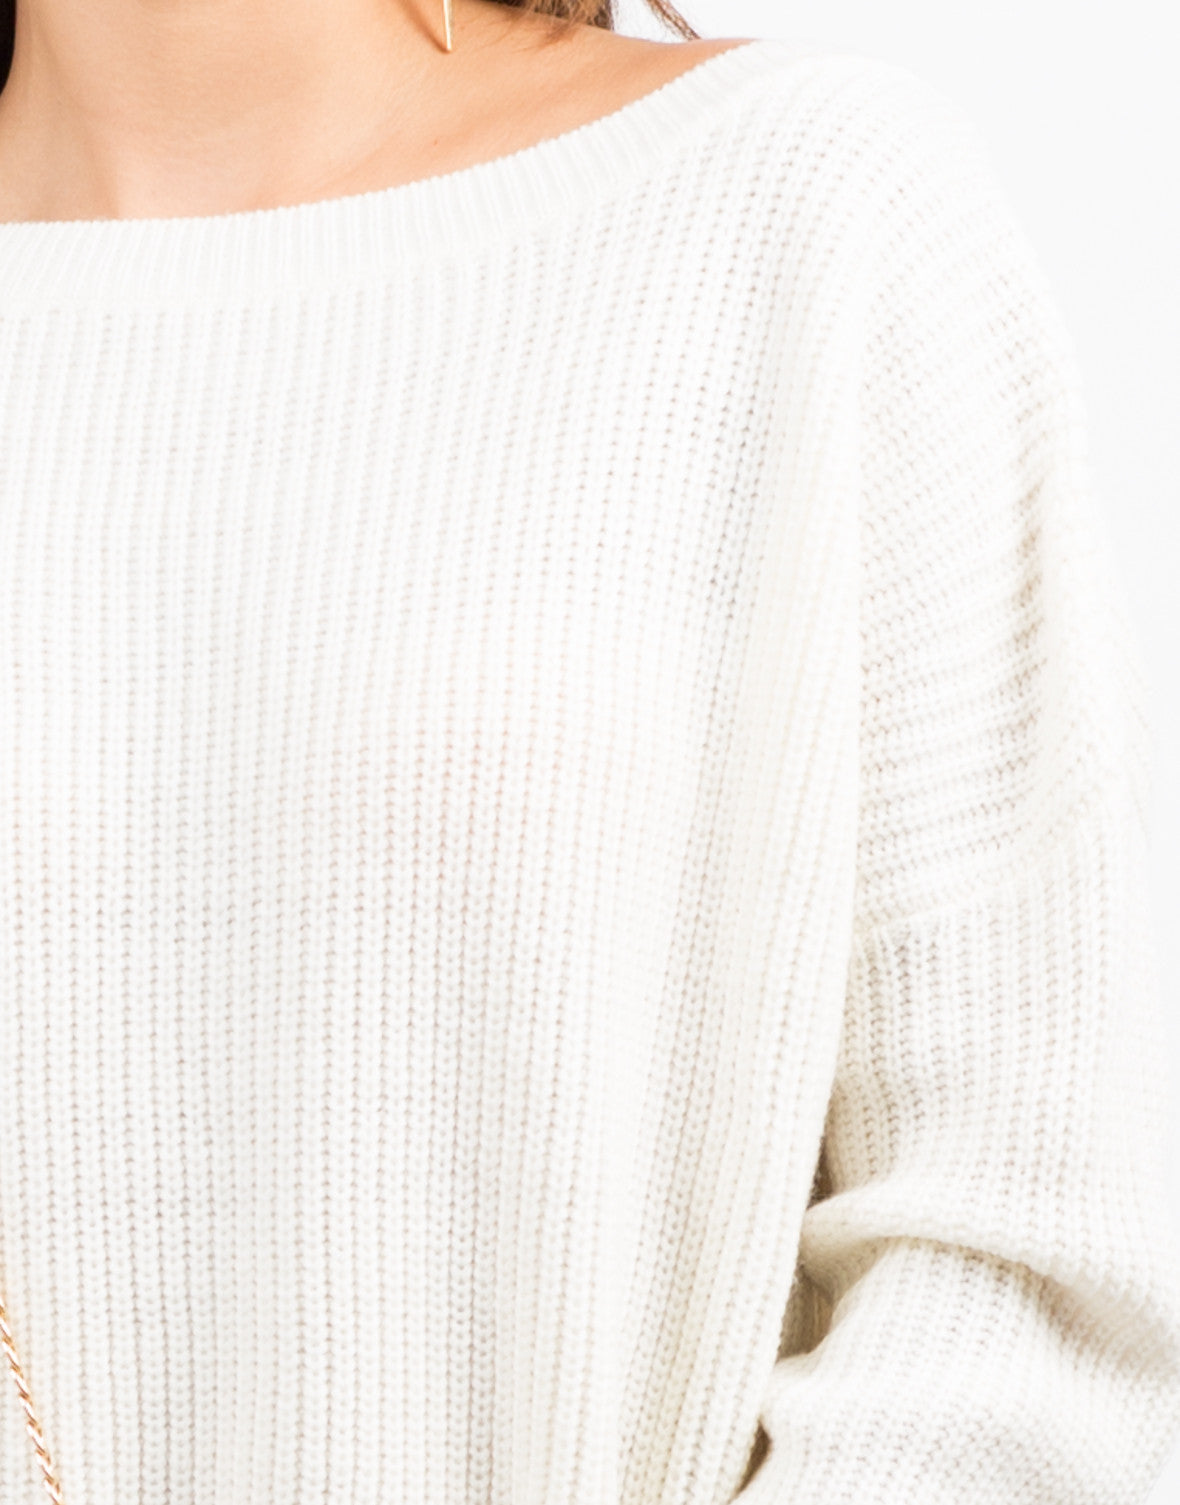 Detail of Oversized Mixed Knit Sweater Dress